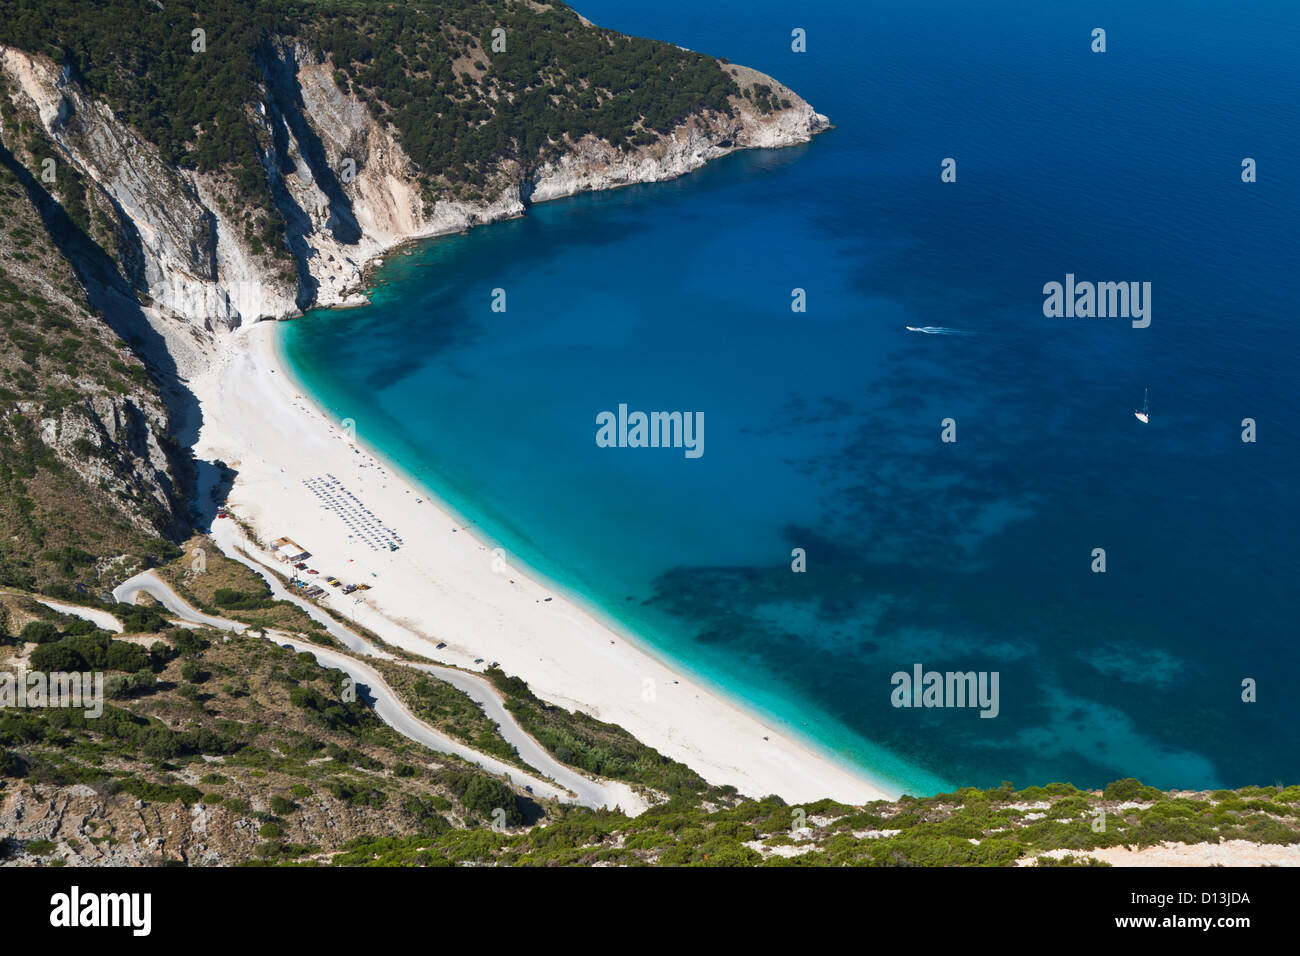 Mirtos beach at Kefalonia island in Greece - Stock Image